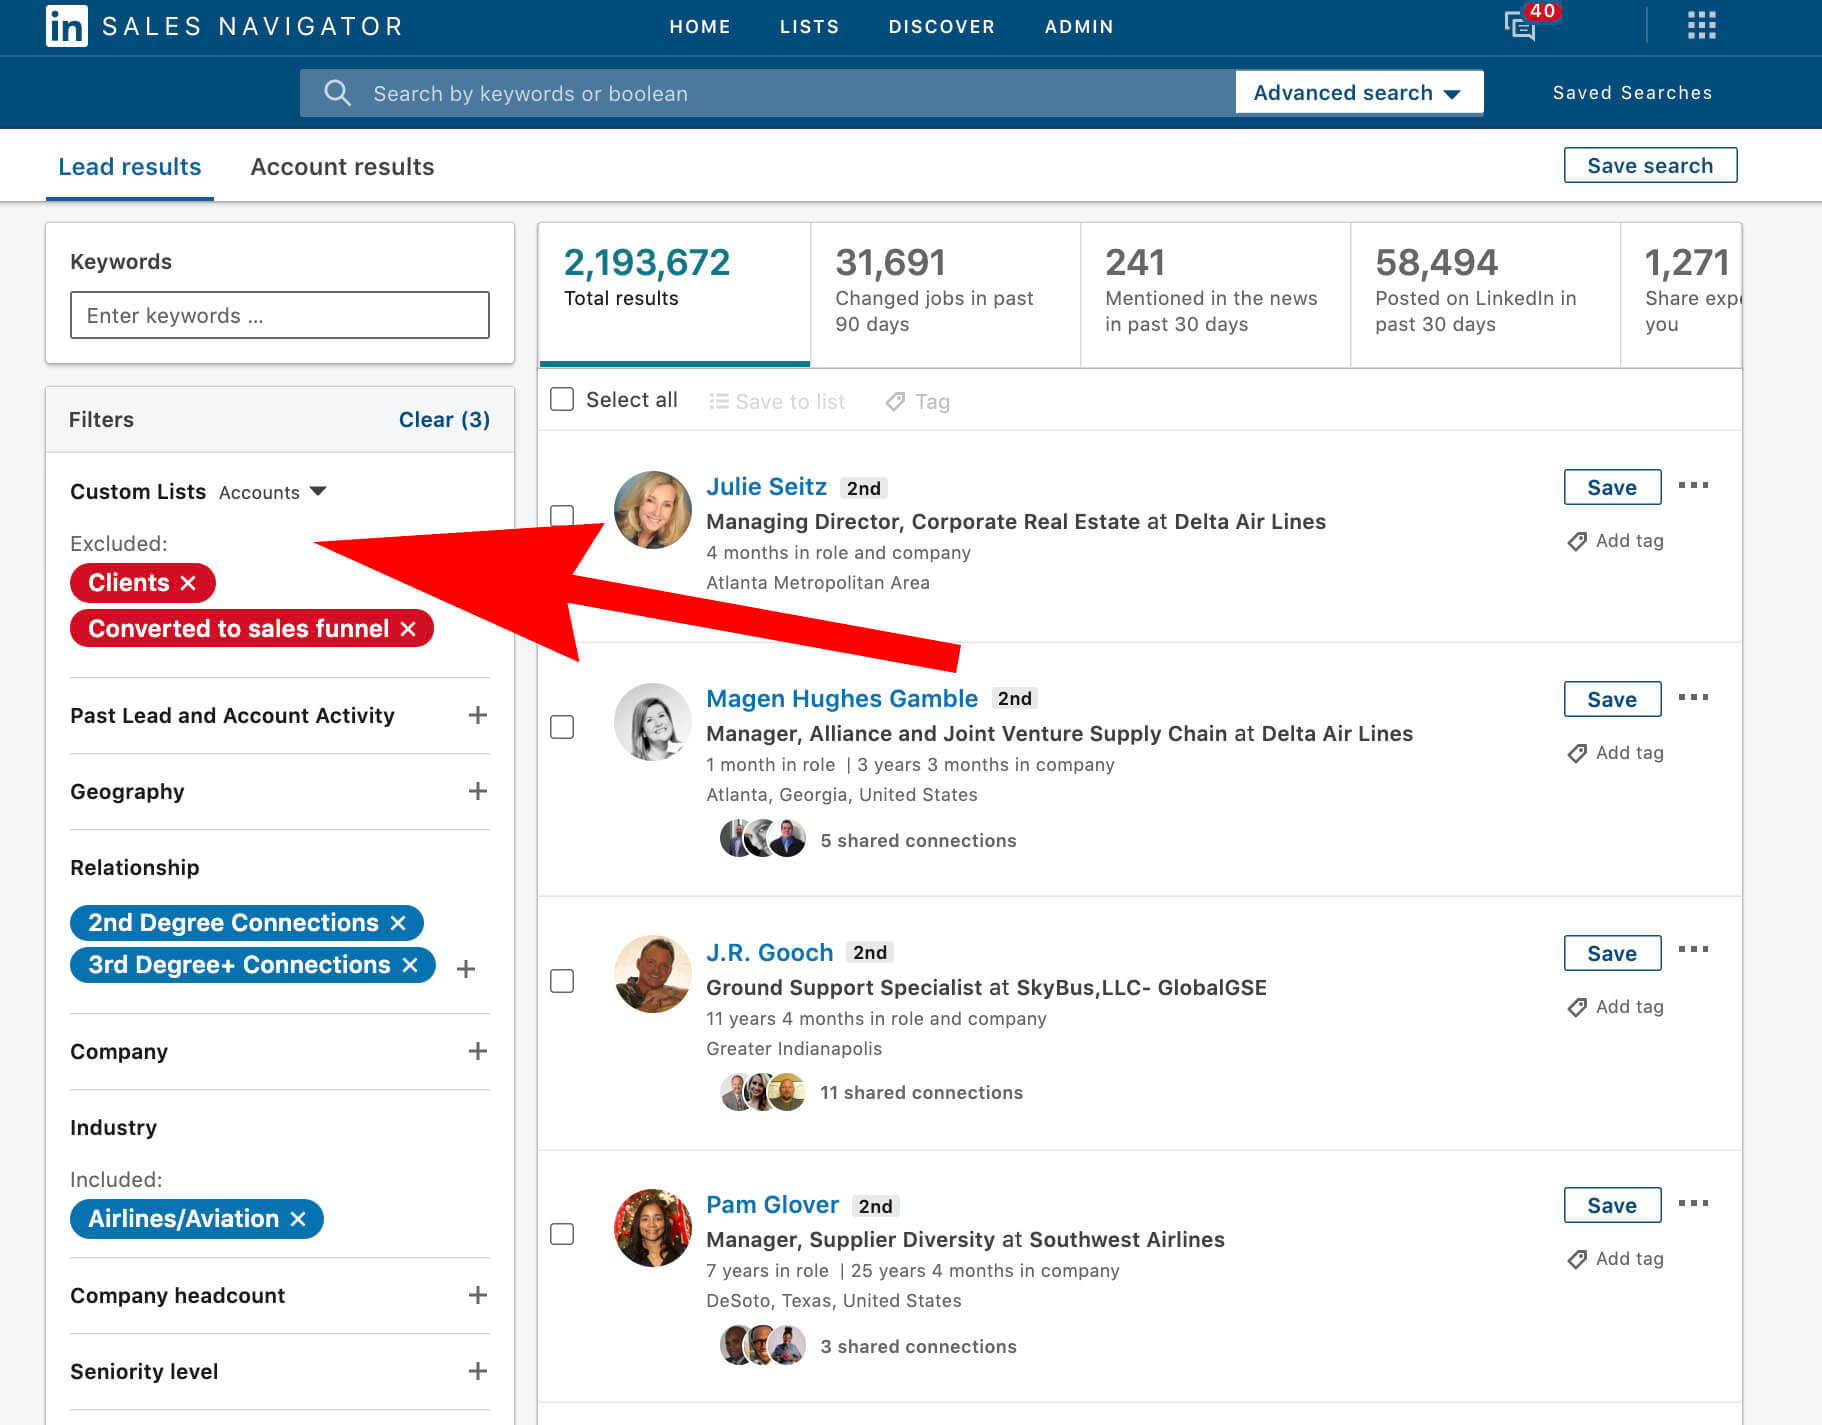 Using Linkedin Custom Lists to create Do Not Contact Templates - custom lists excluded